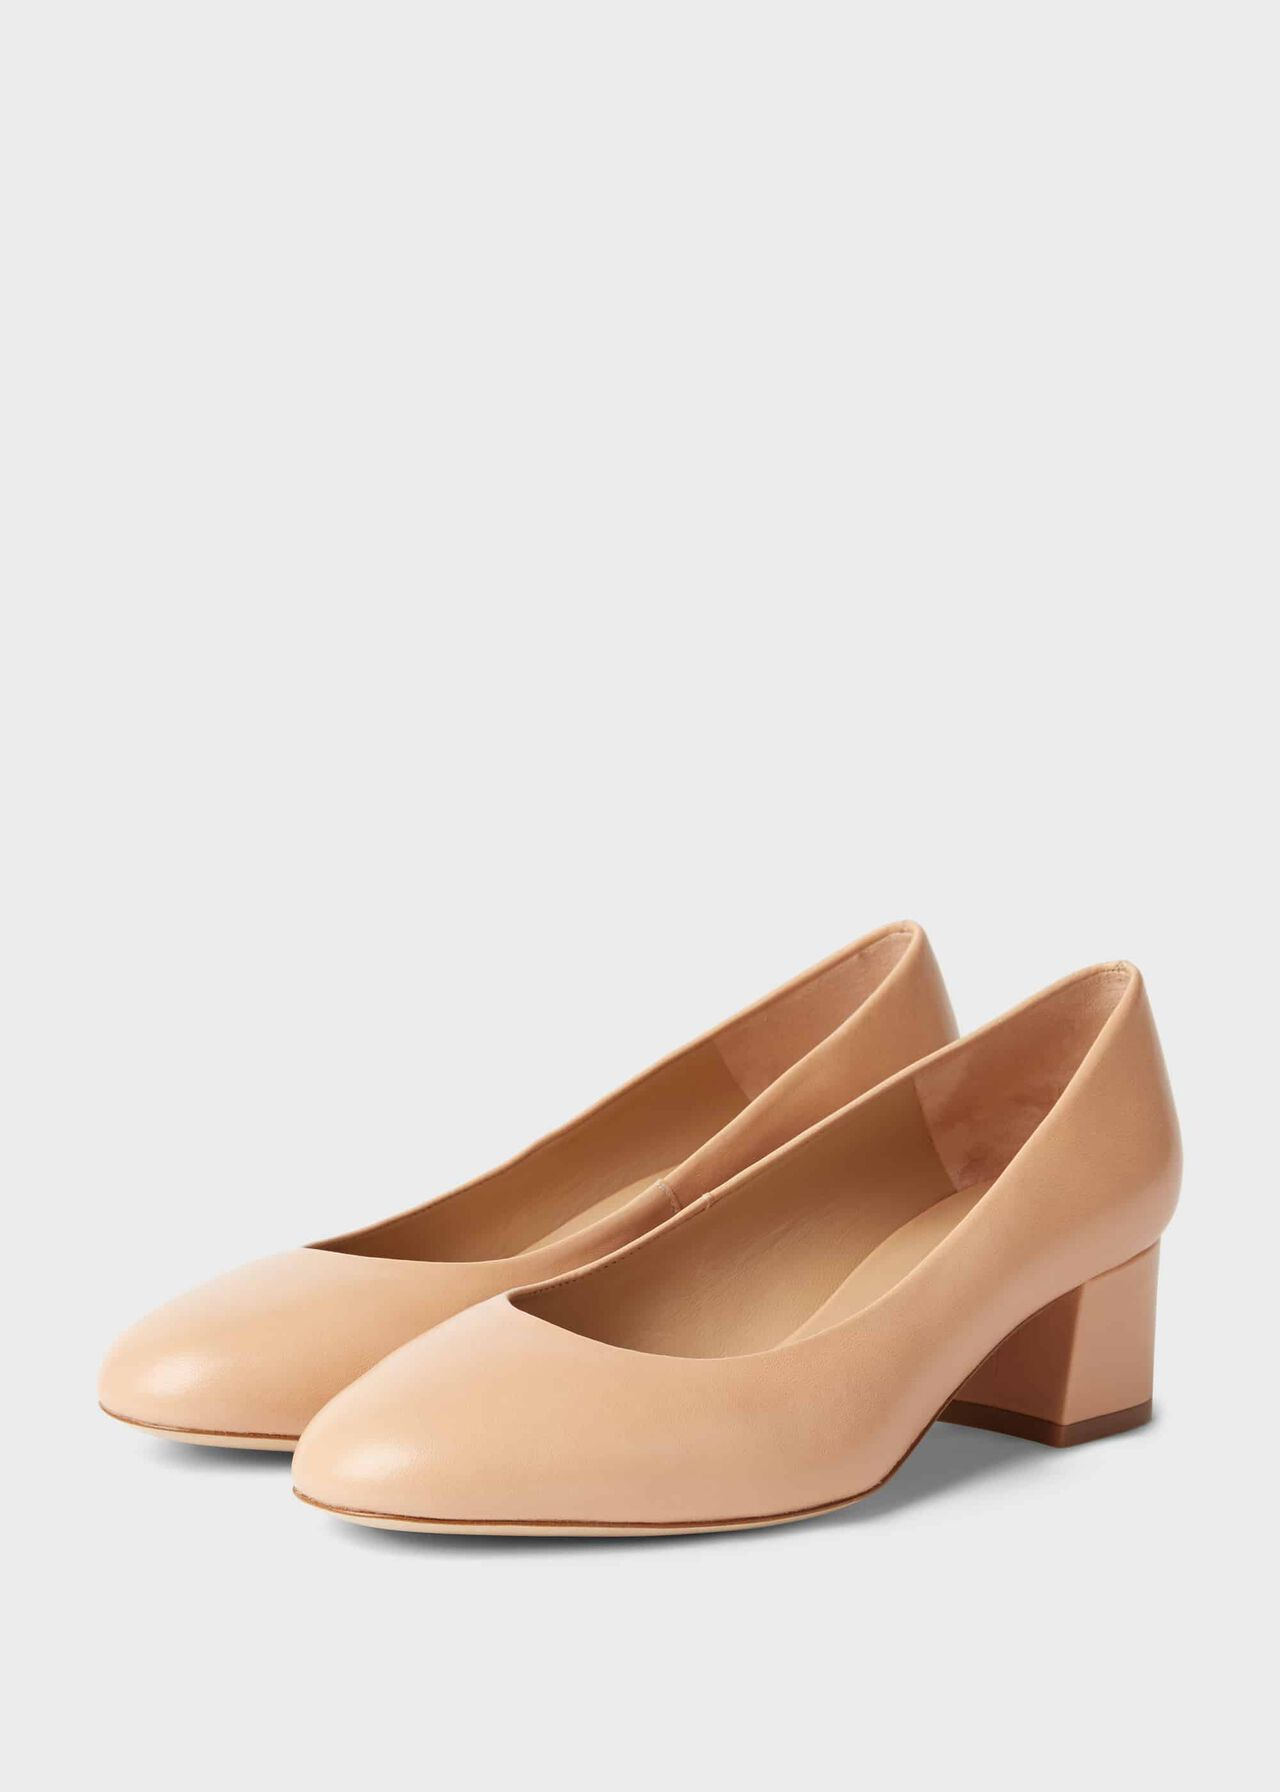 Natalie Wide Fit Leather Block Heel Court Shoes Nude